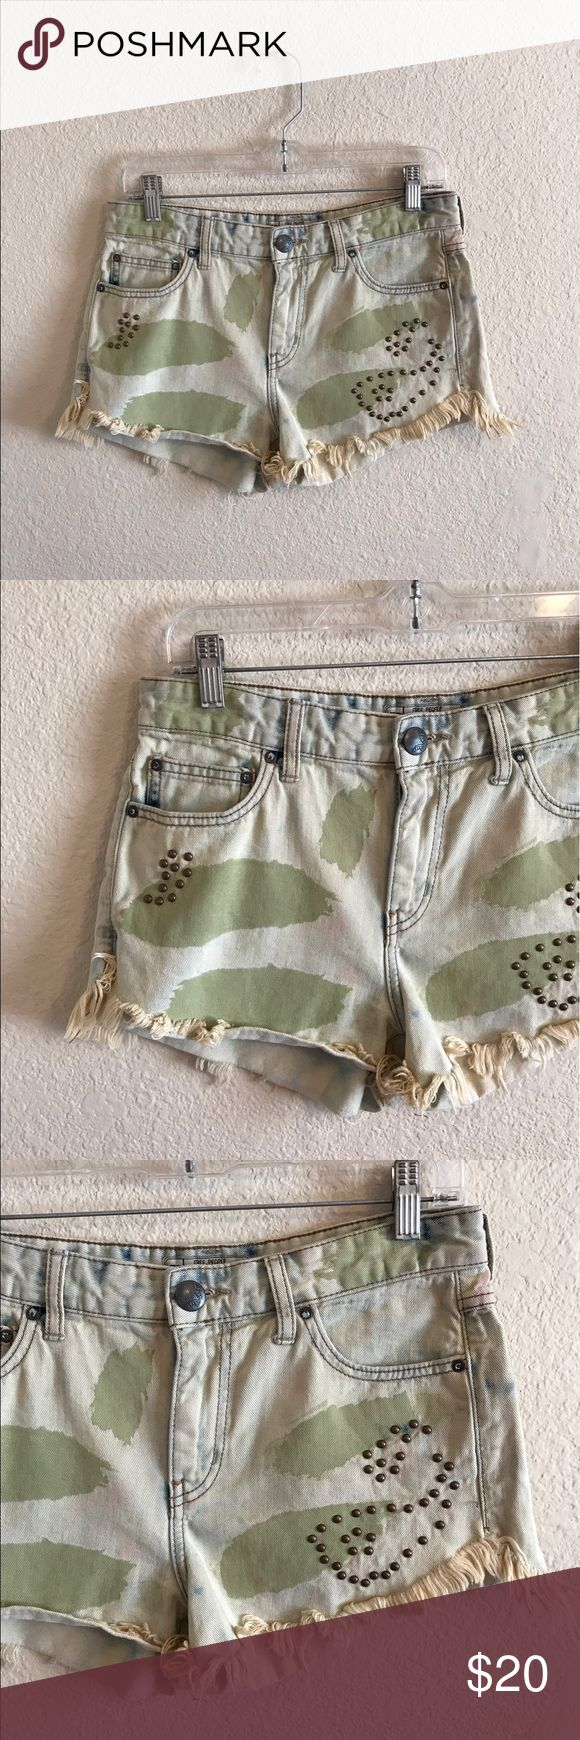 "FREE PEOPLE women's Camo Shorts 27 Free People women's Camo Studded Shorts.  Size: 27.  In Great condition!  Inseam: 3"". If you have any questions feel free to ask! Free People Shorts Jean Shorts"